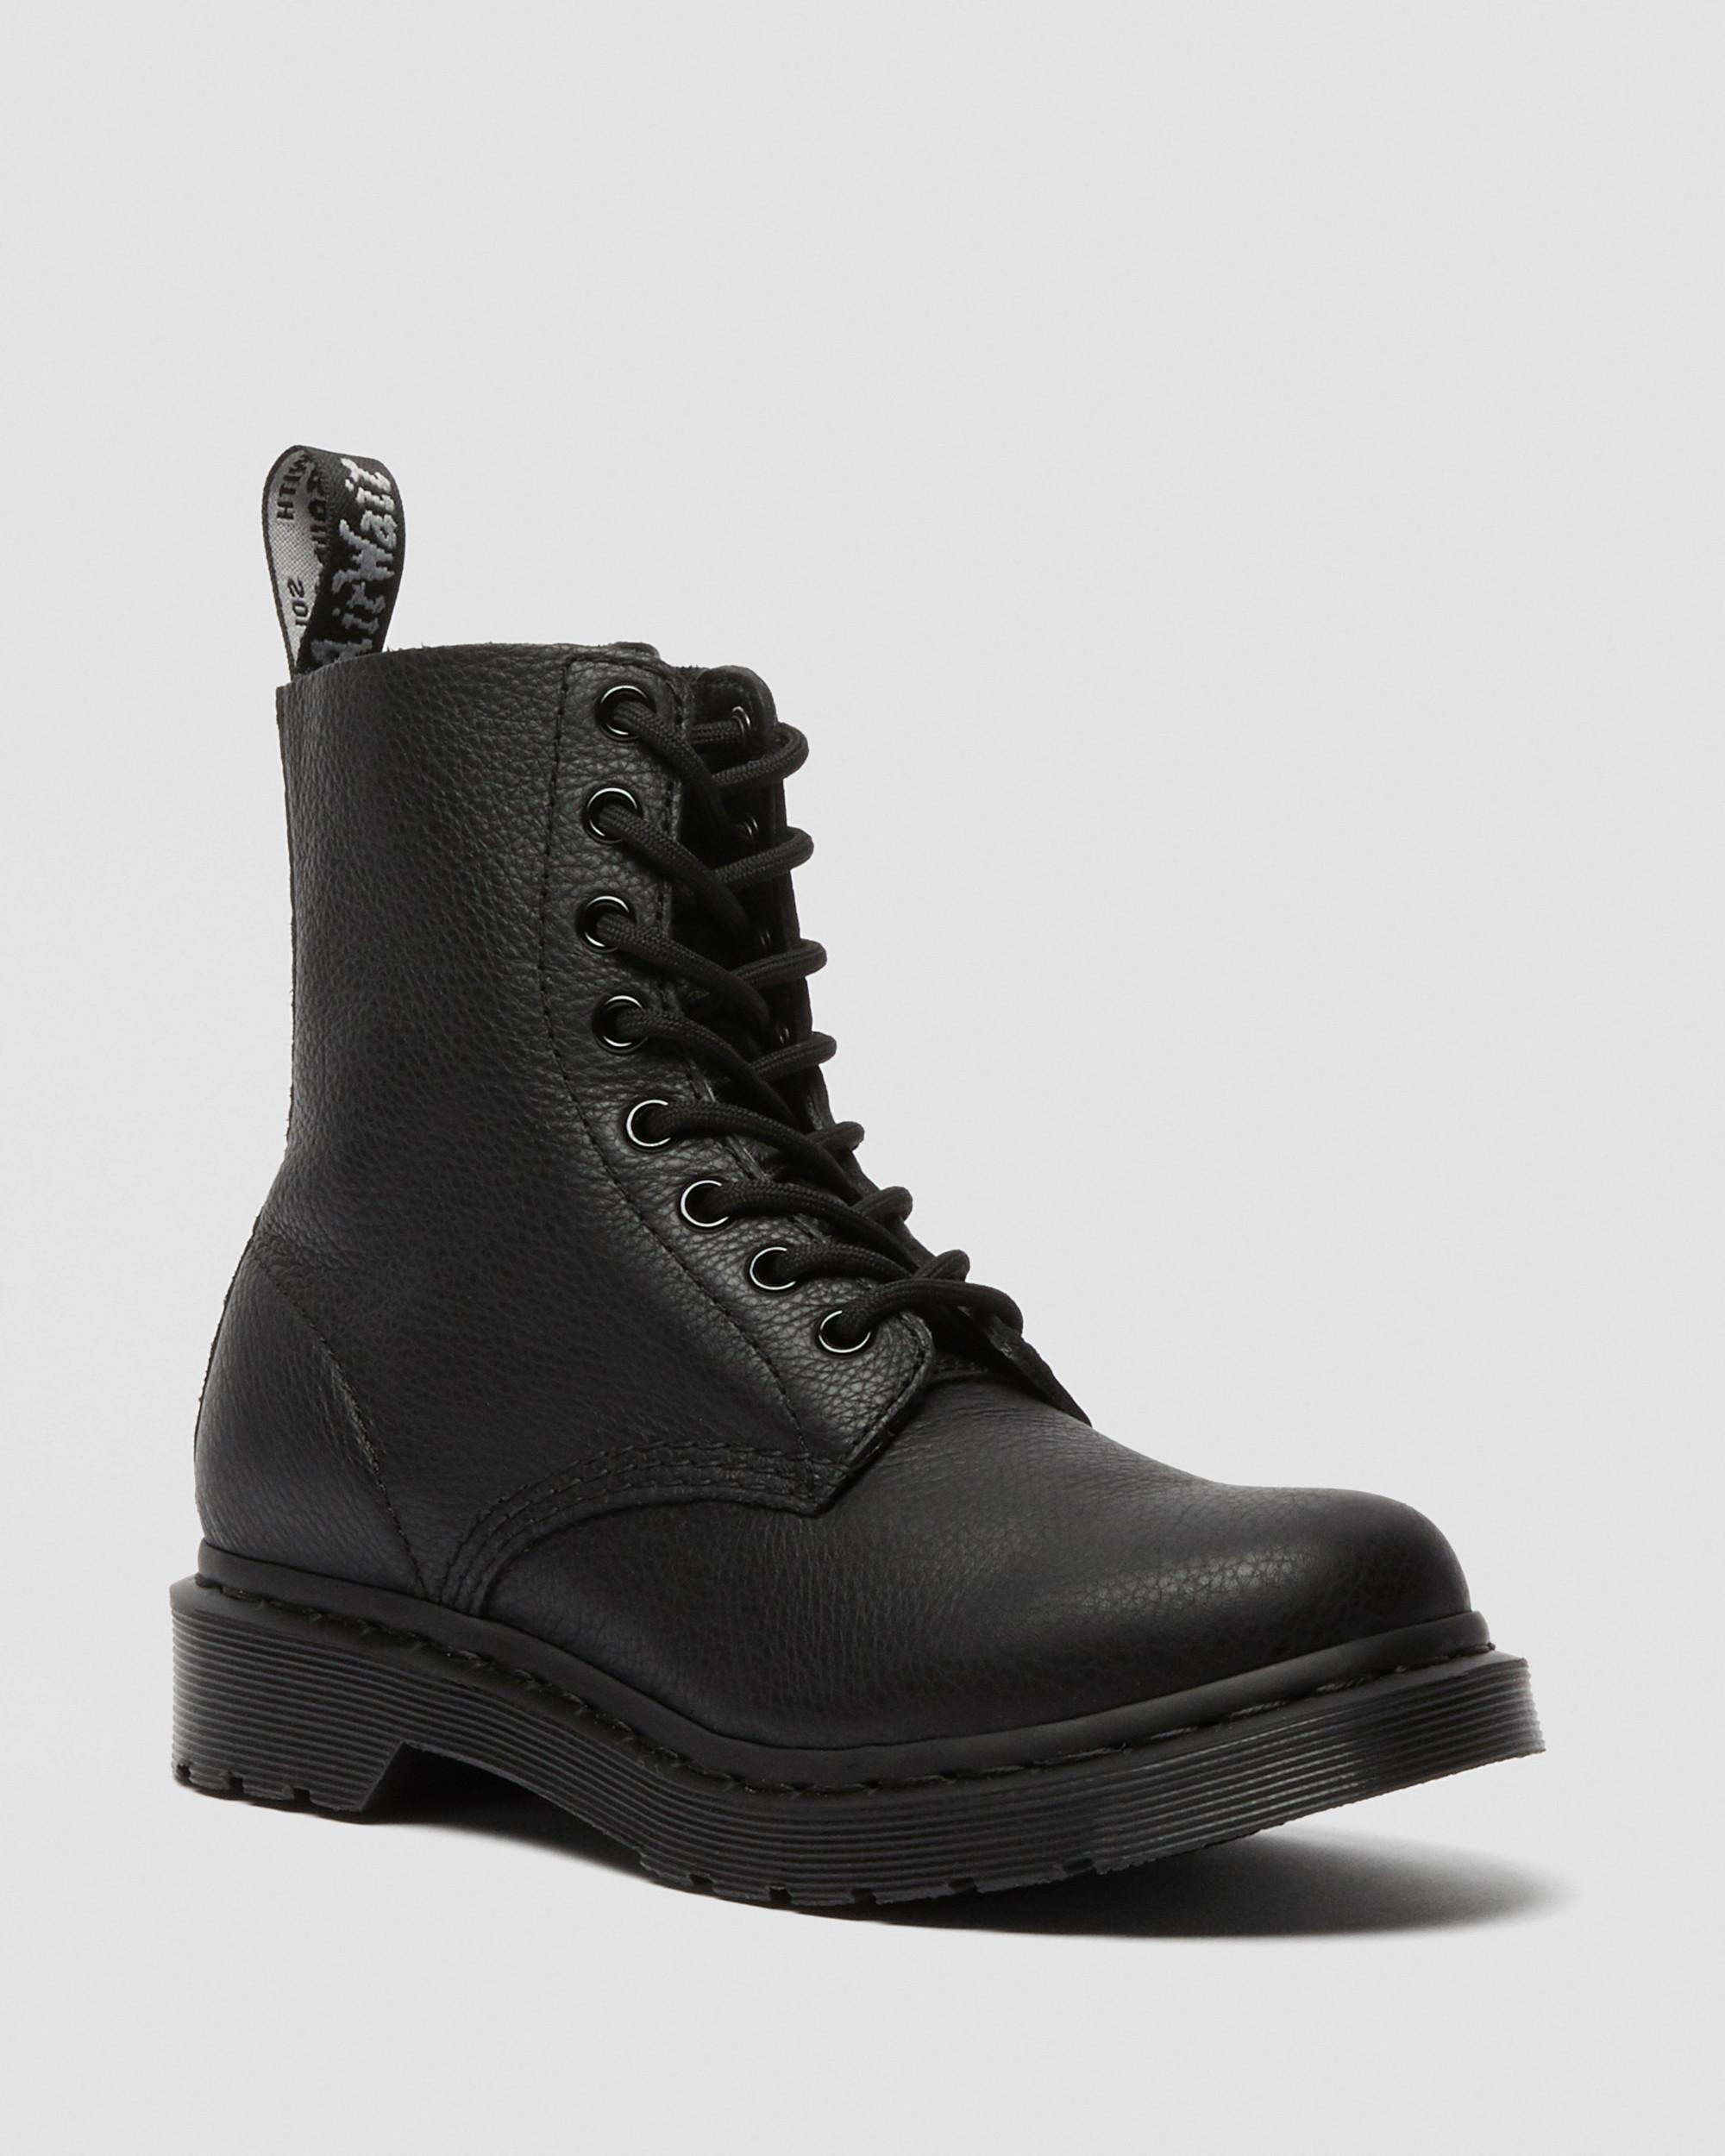 DR MARTENS 1460 PASCAL MONO VIRGINIA LEATHER ANKLE BOOTS